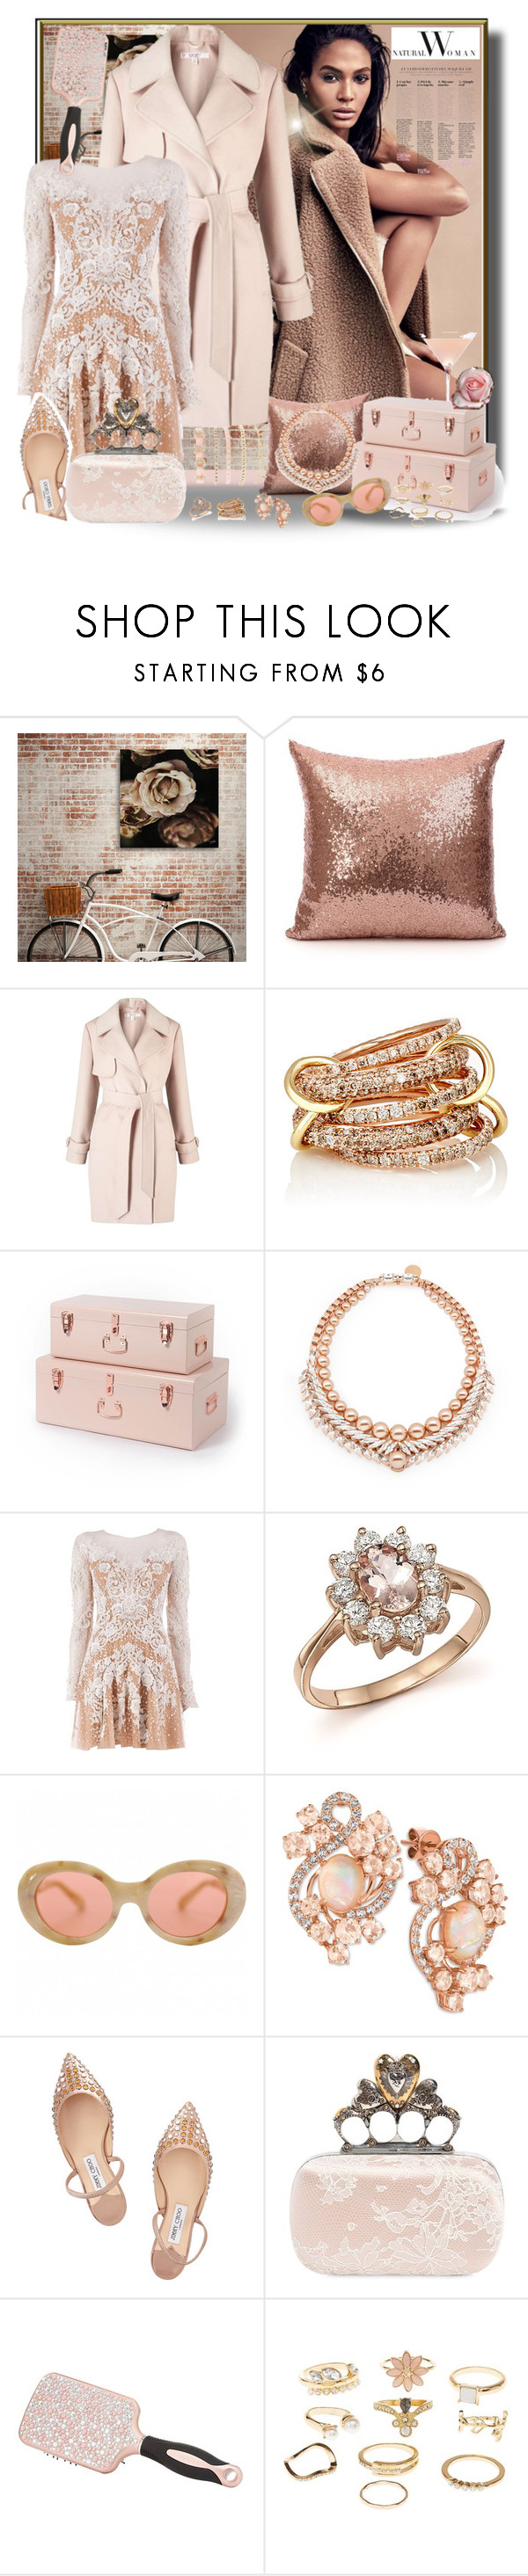 """Neutral"" by jaymagic ❤ liked on Polyvore featuring Miss Selfridge, SPINELLI KILCOLLIN, Ellen Conde, Zuhair Murad, Bloomingdale's, Acne Studios, LE VIAN, Jimmy Choo, Alexander McQueen and Charlotte Russe"